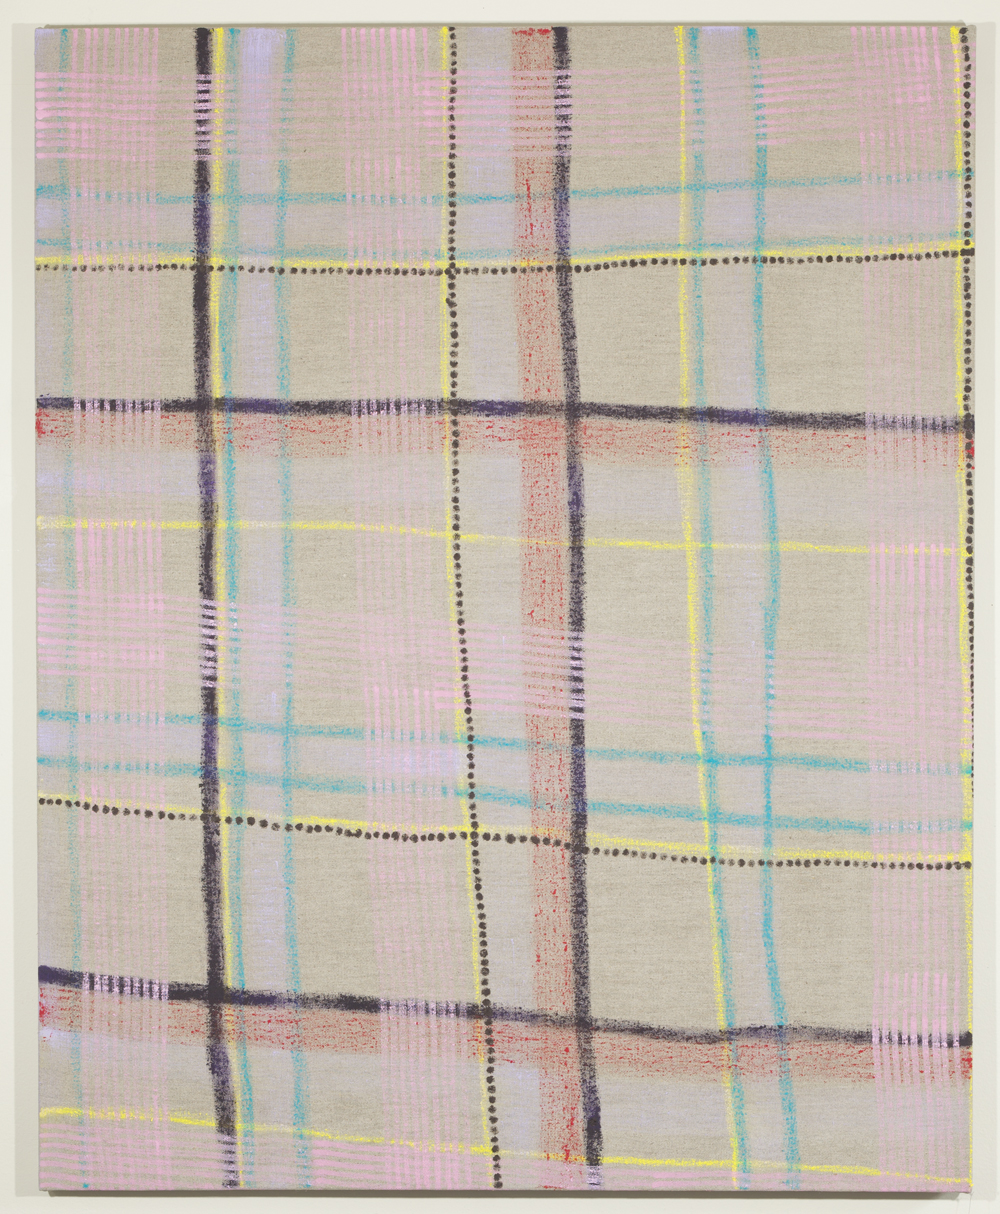 Untitled (Pink Plaid)